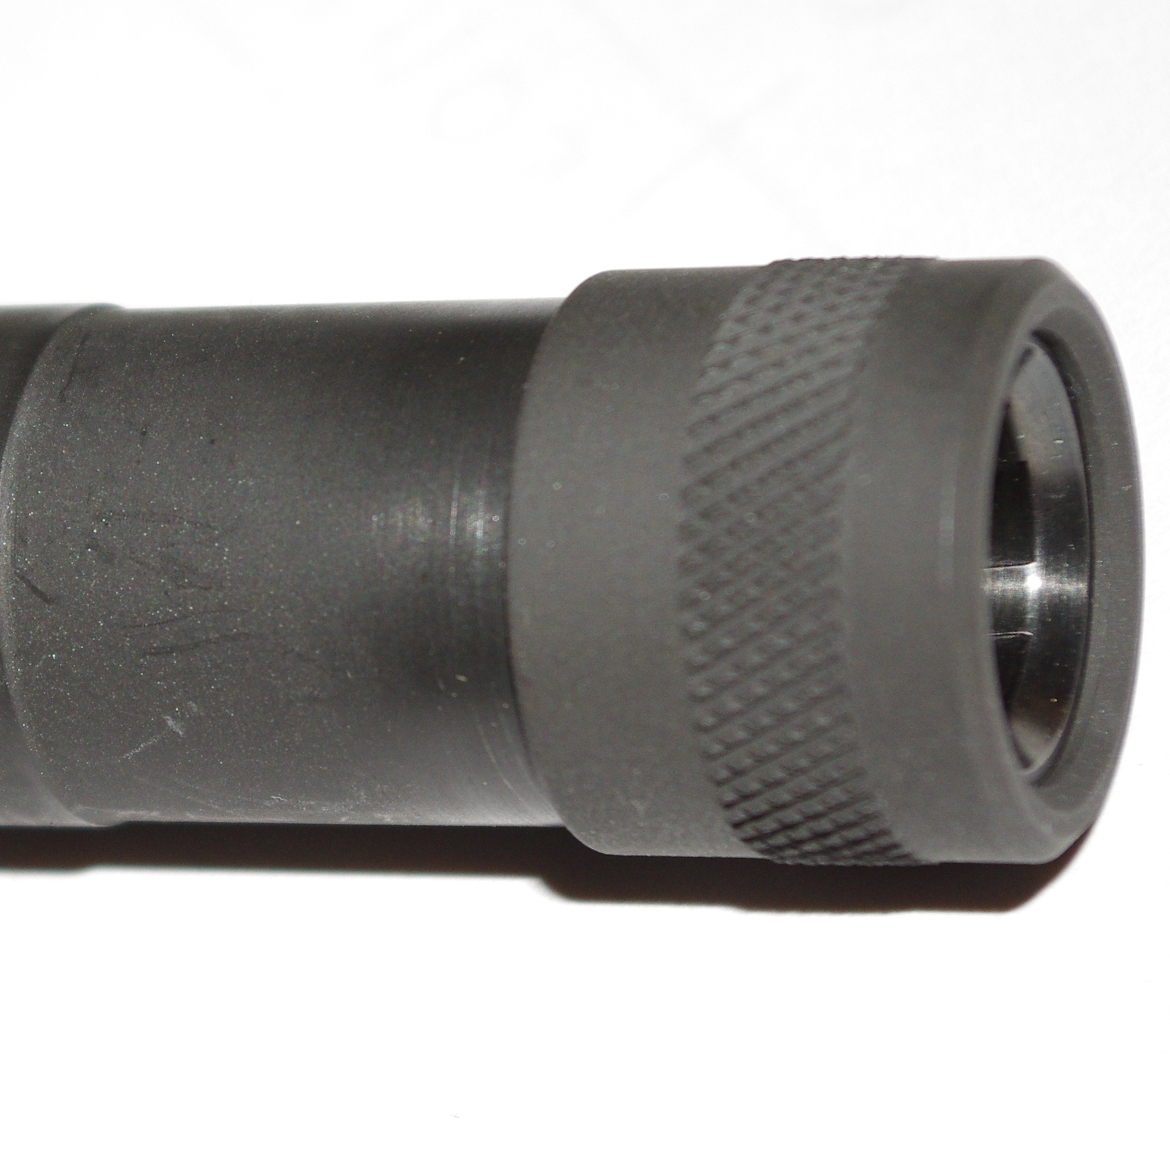 Sheridan engineering muzzle thread protectors